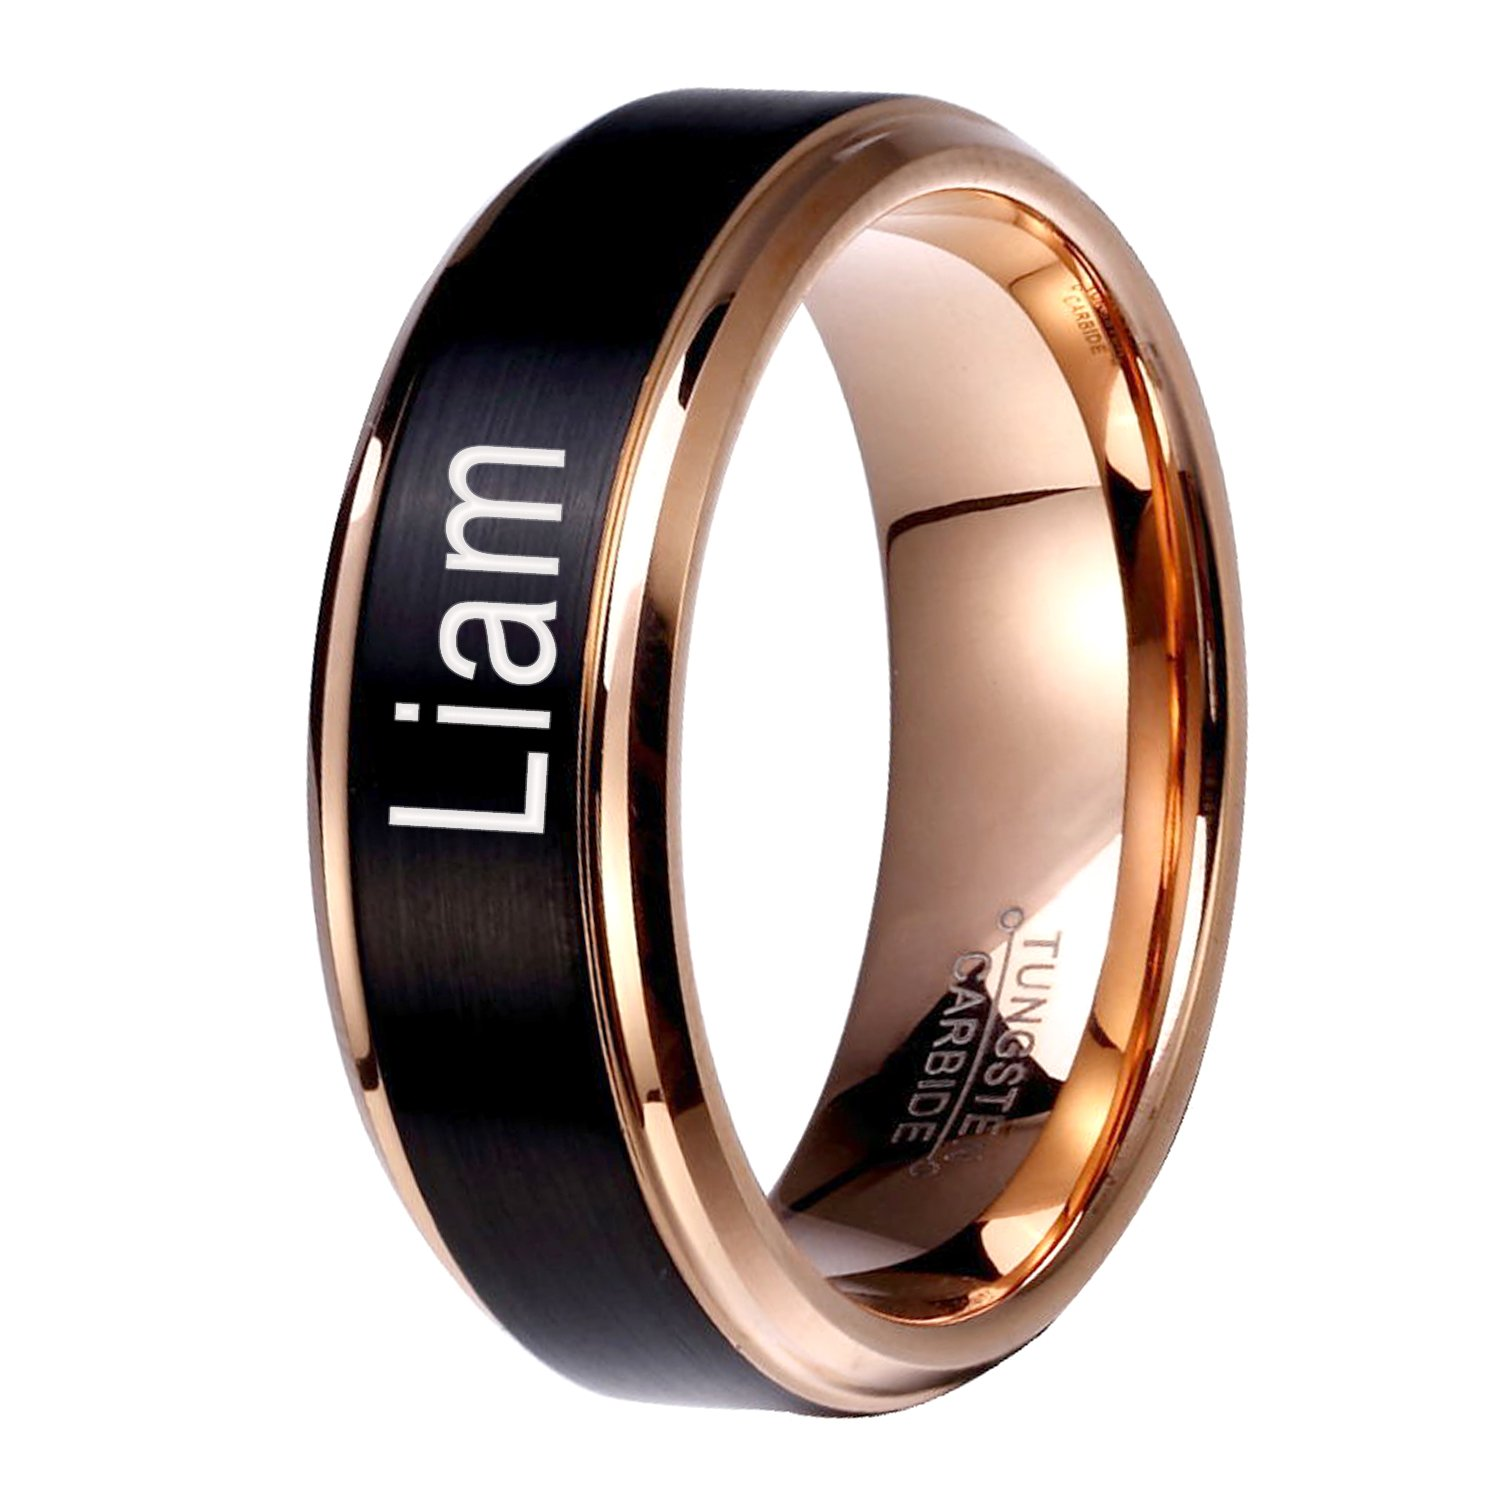 UlanMoron Anniversary Rings, Laser Engraved with Name, Men's 8mm Classic Tungsten Carbide Rings by UlanMoron